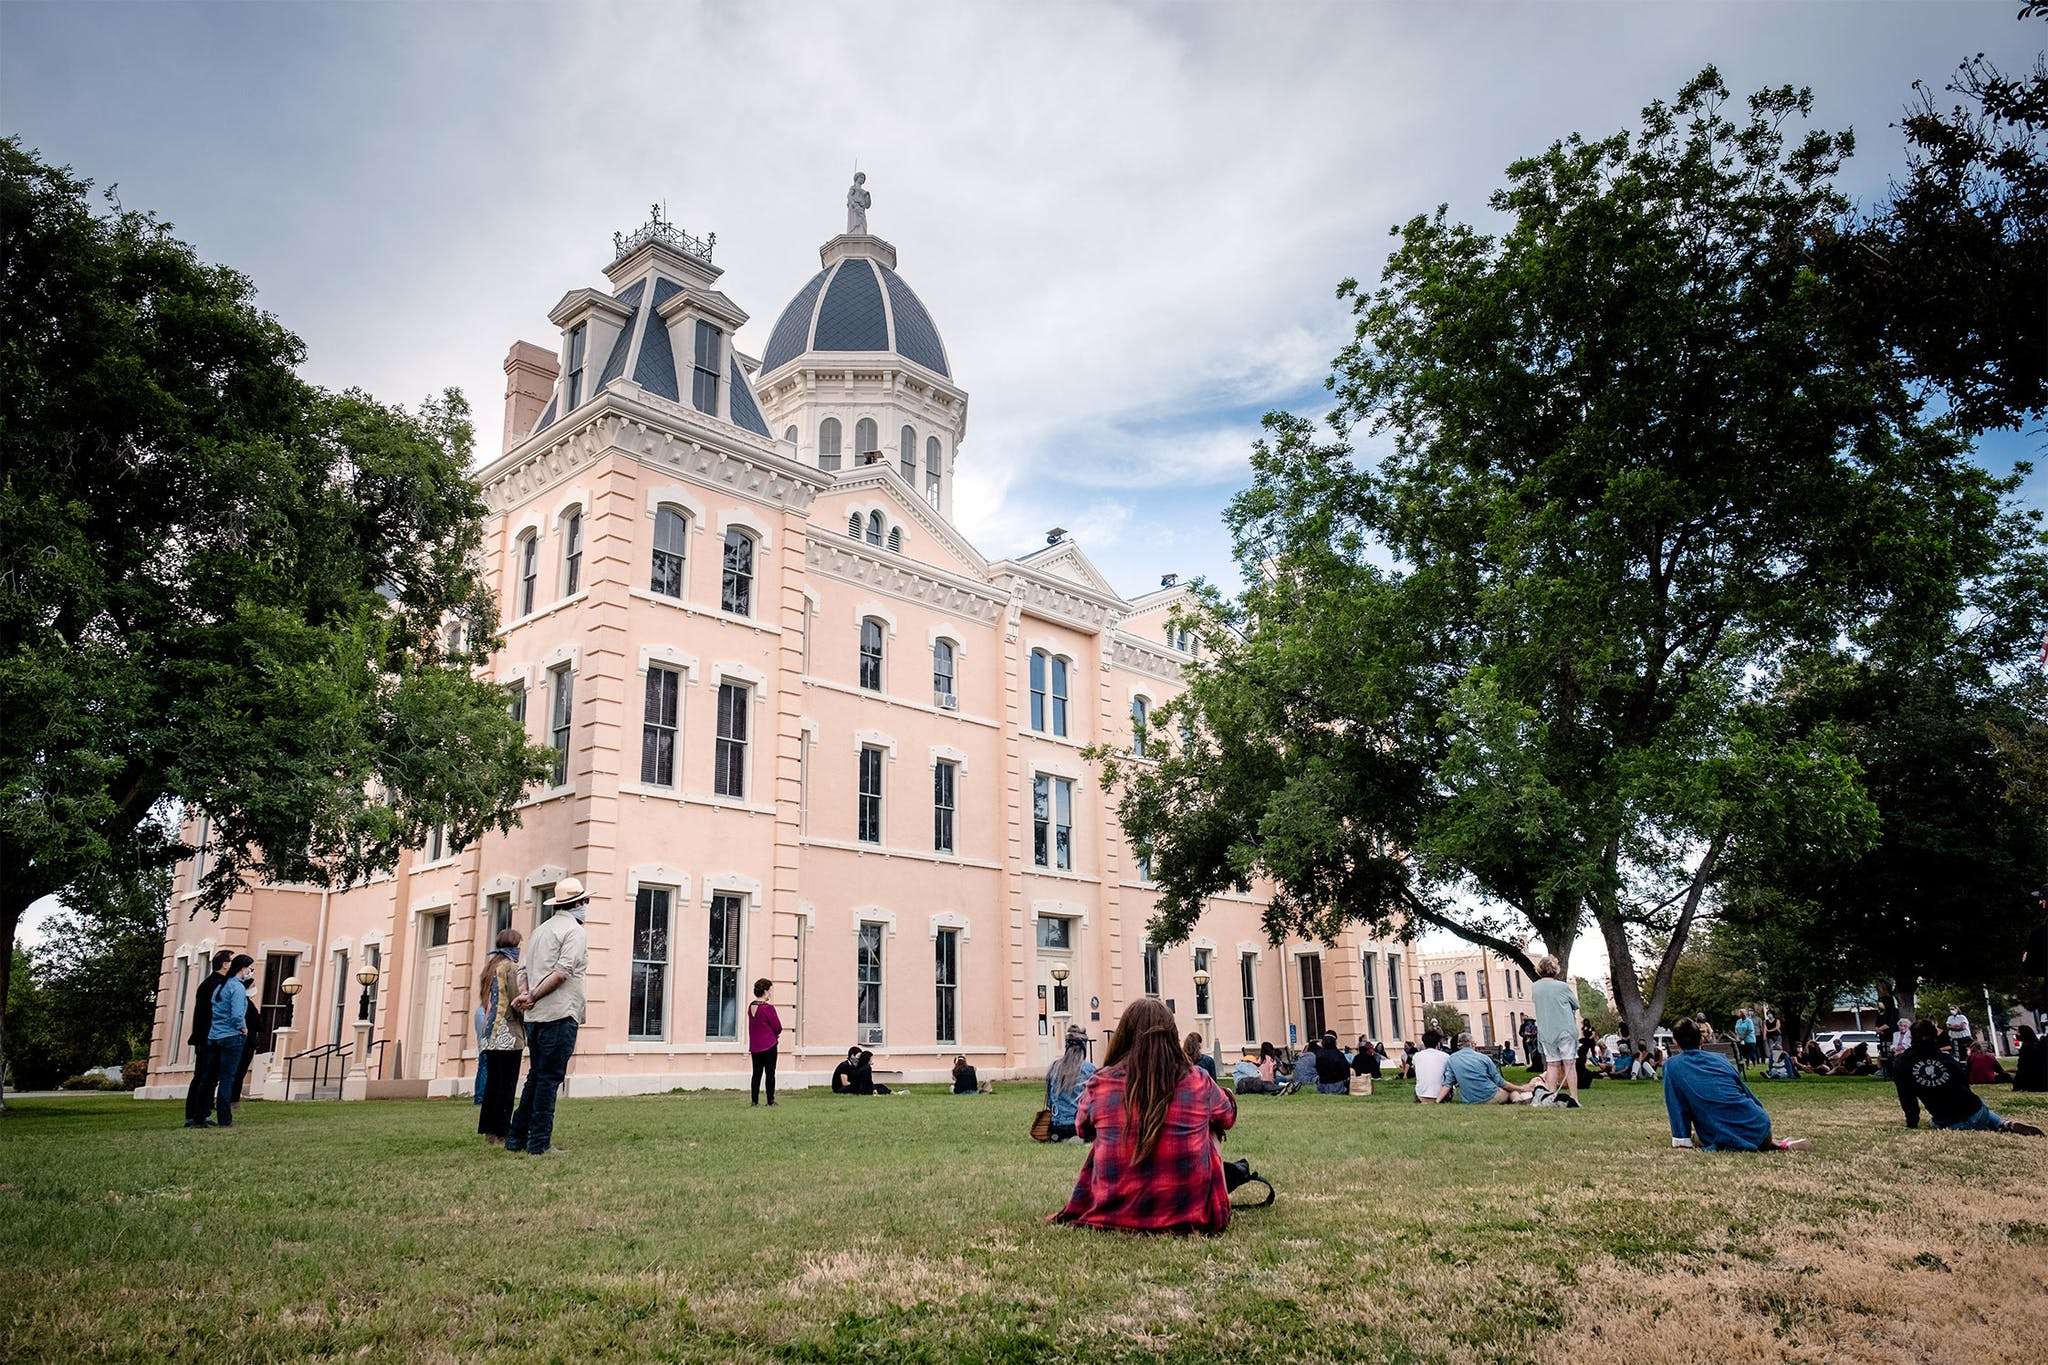 A vigil for George Floyd takes place at the Presidio County Courthouse in Marfa on May 31, 2020.